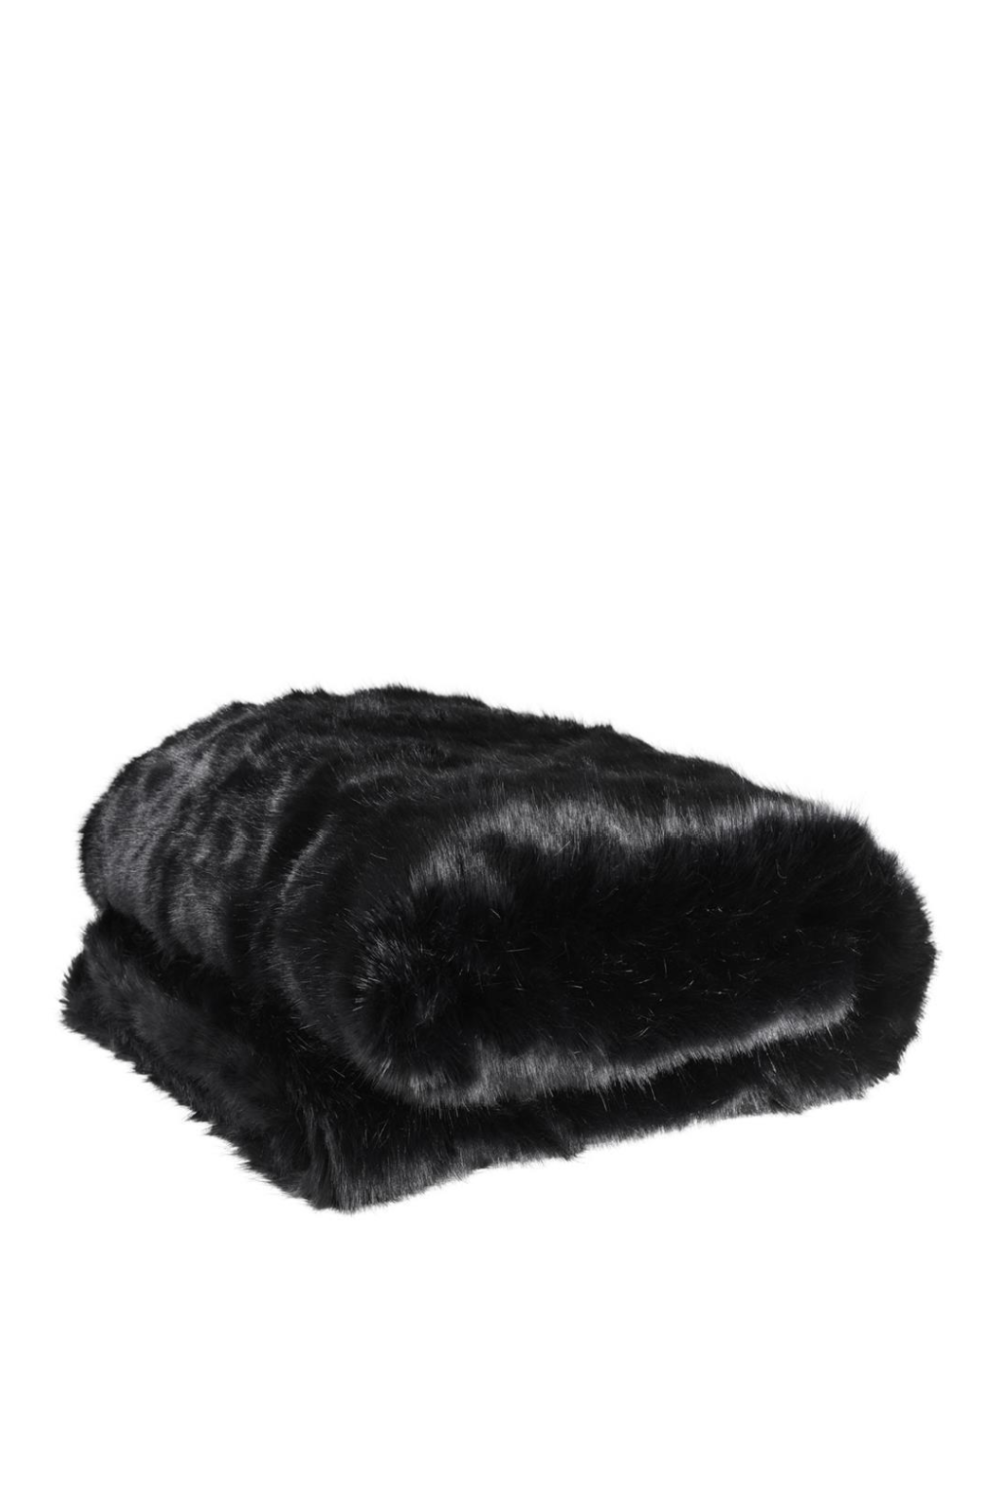 Black Fur Throw | Eichholtz Alaska | #1 Eichholtz Online Retailer